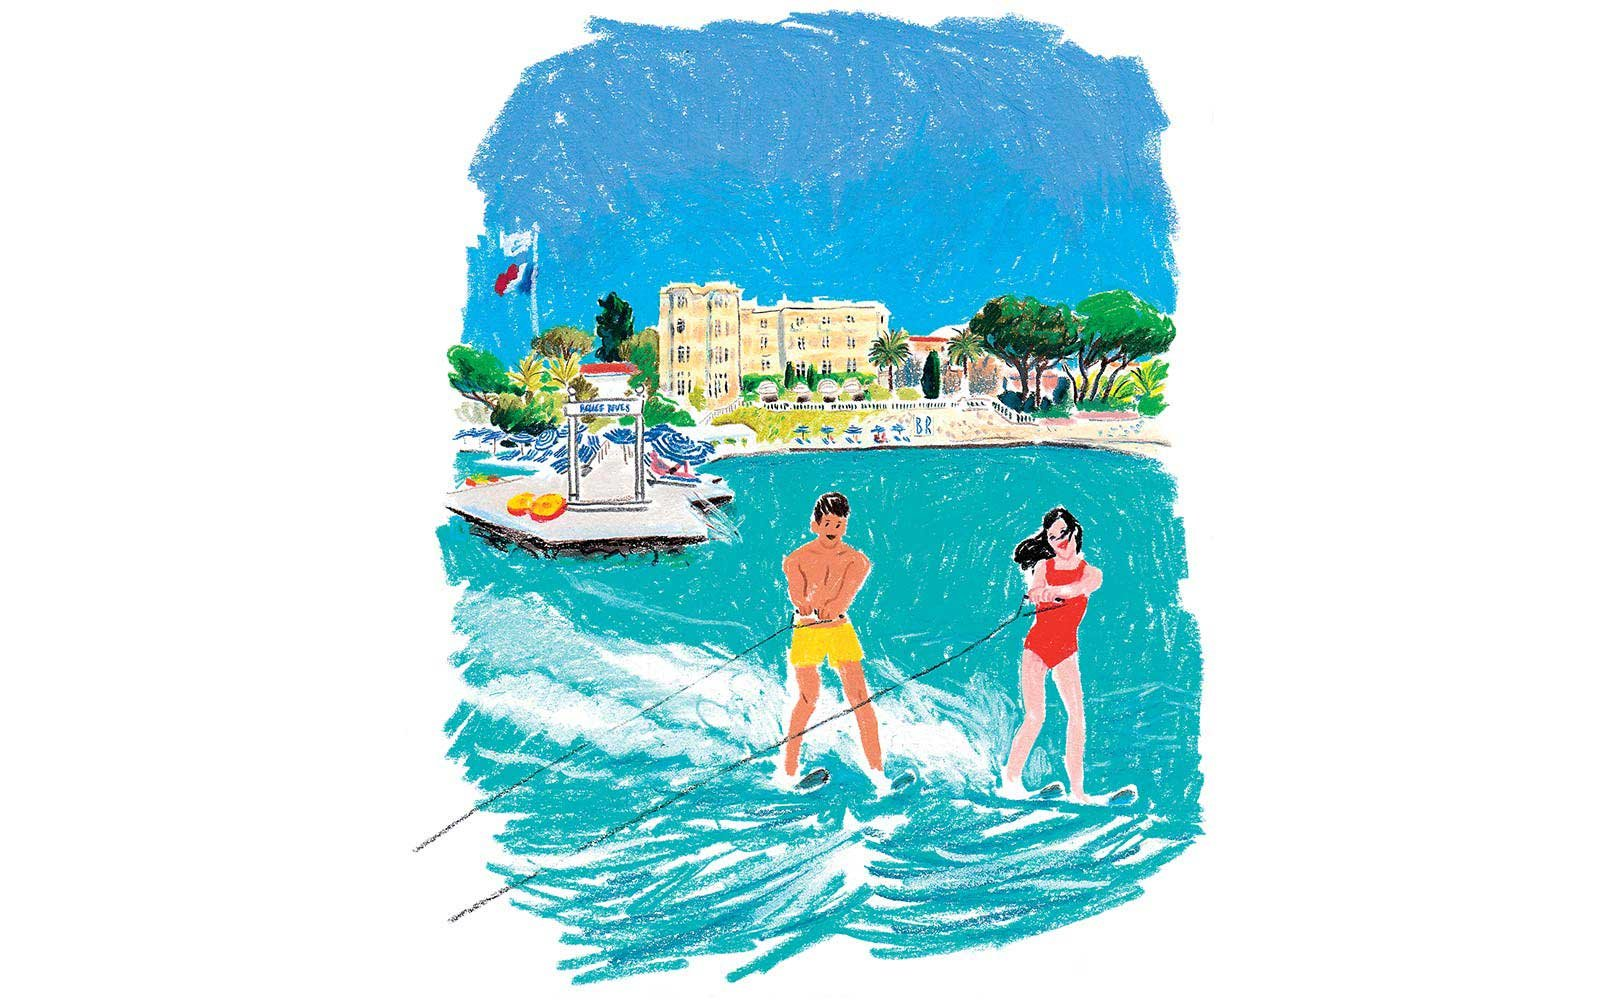 Waterskiing at the Hôtel Belle Rives in Juan-les-pins